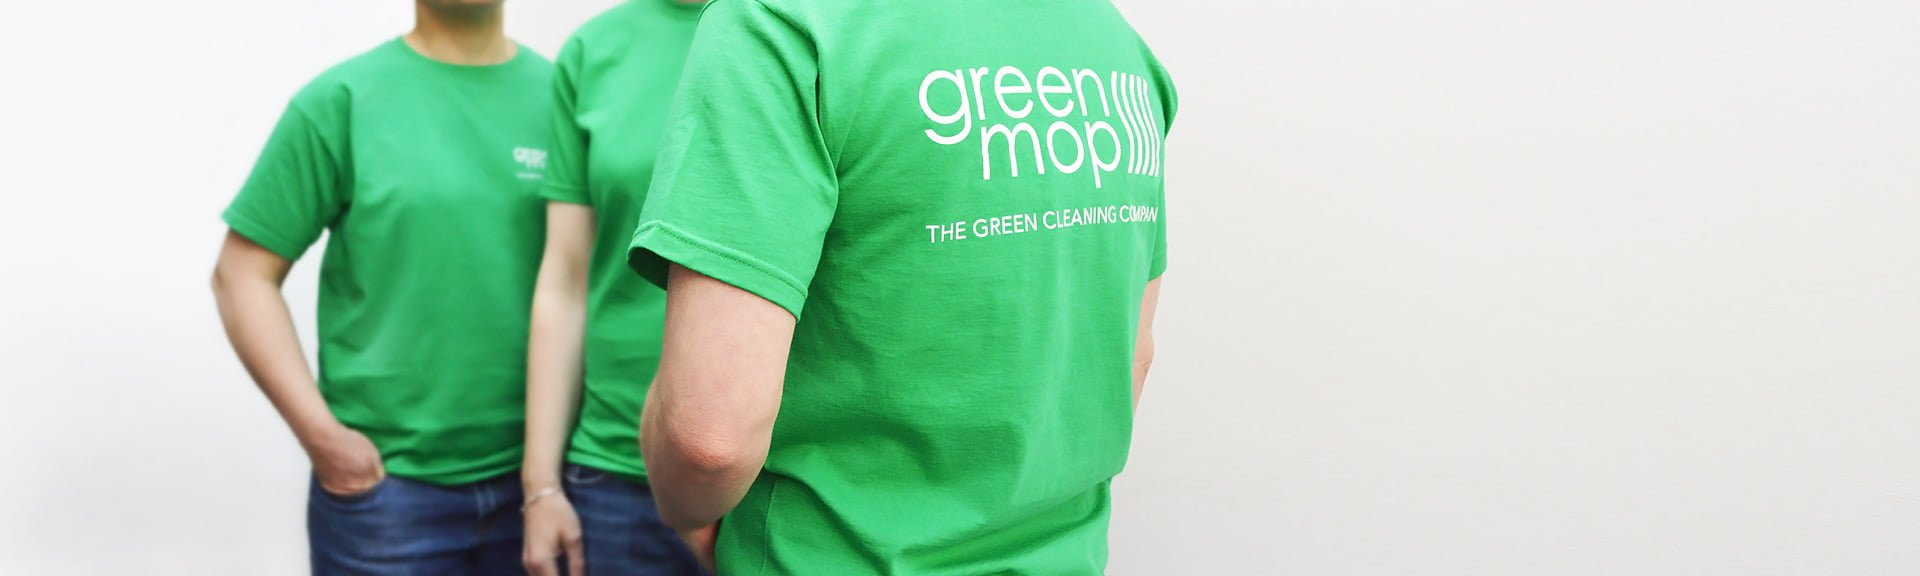 Greenmop We Are Hiring